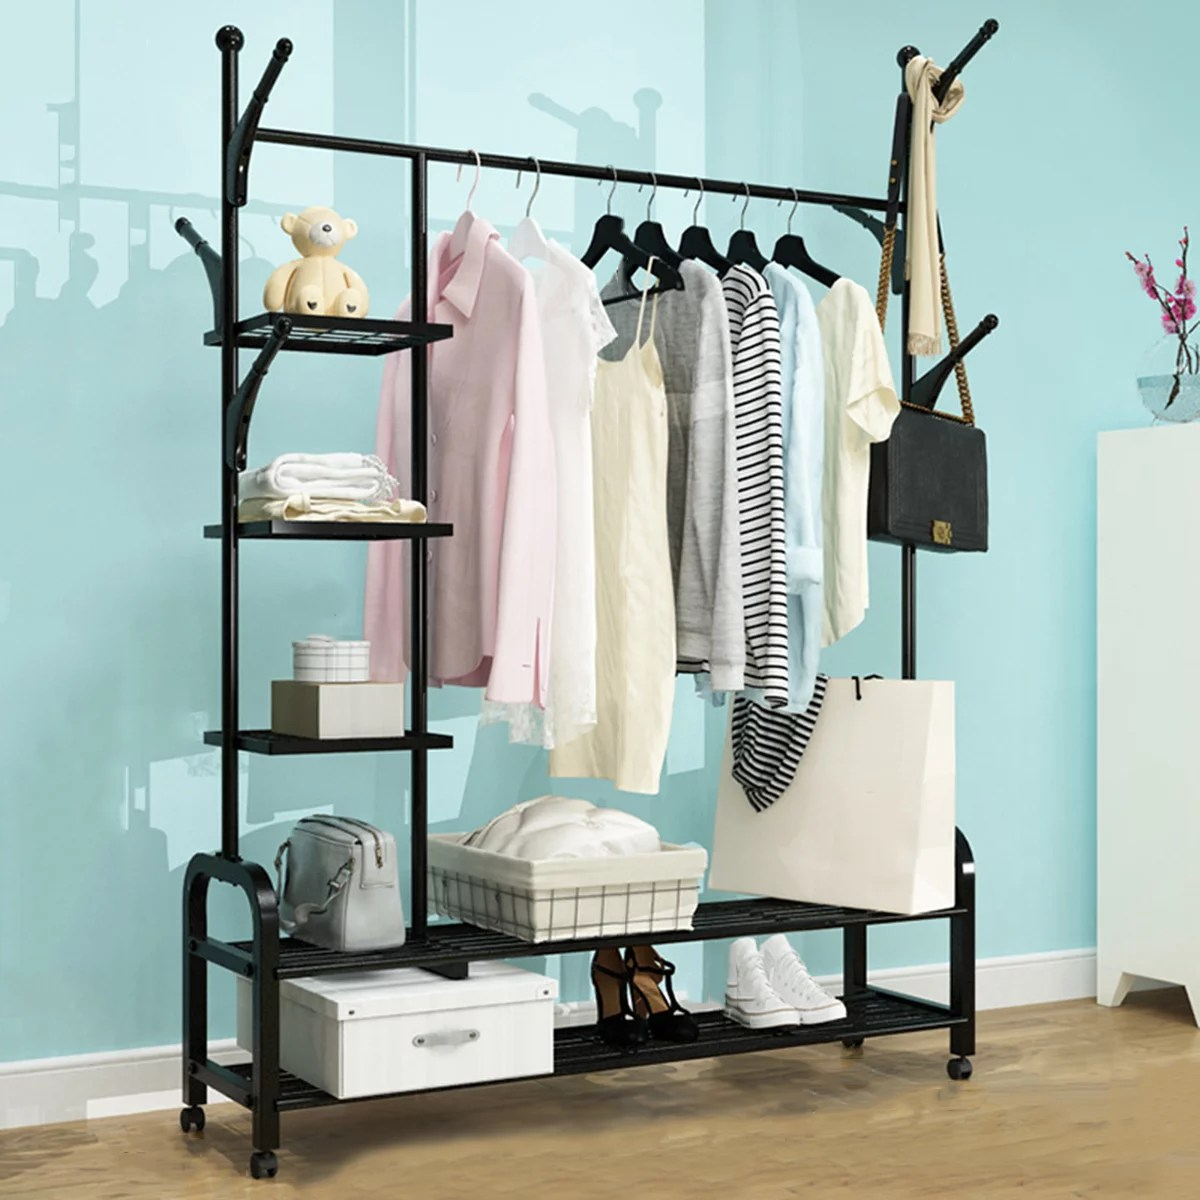 free standing closet organizer heavy duty closet storage with 6 shelves and hanging bar large clothes storage standing garment rack